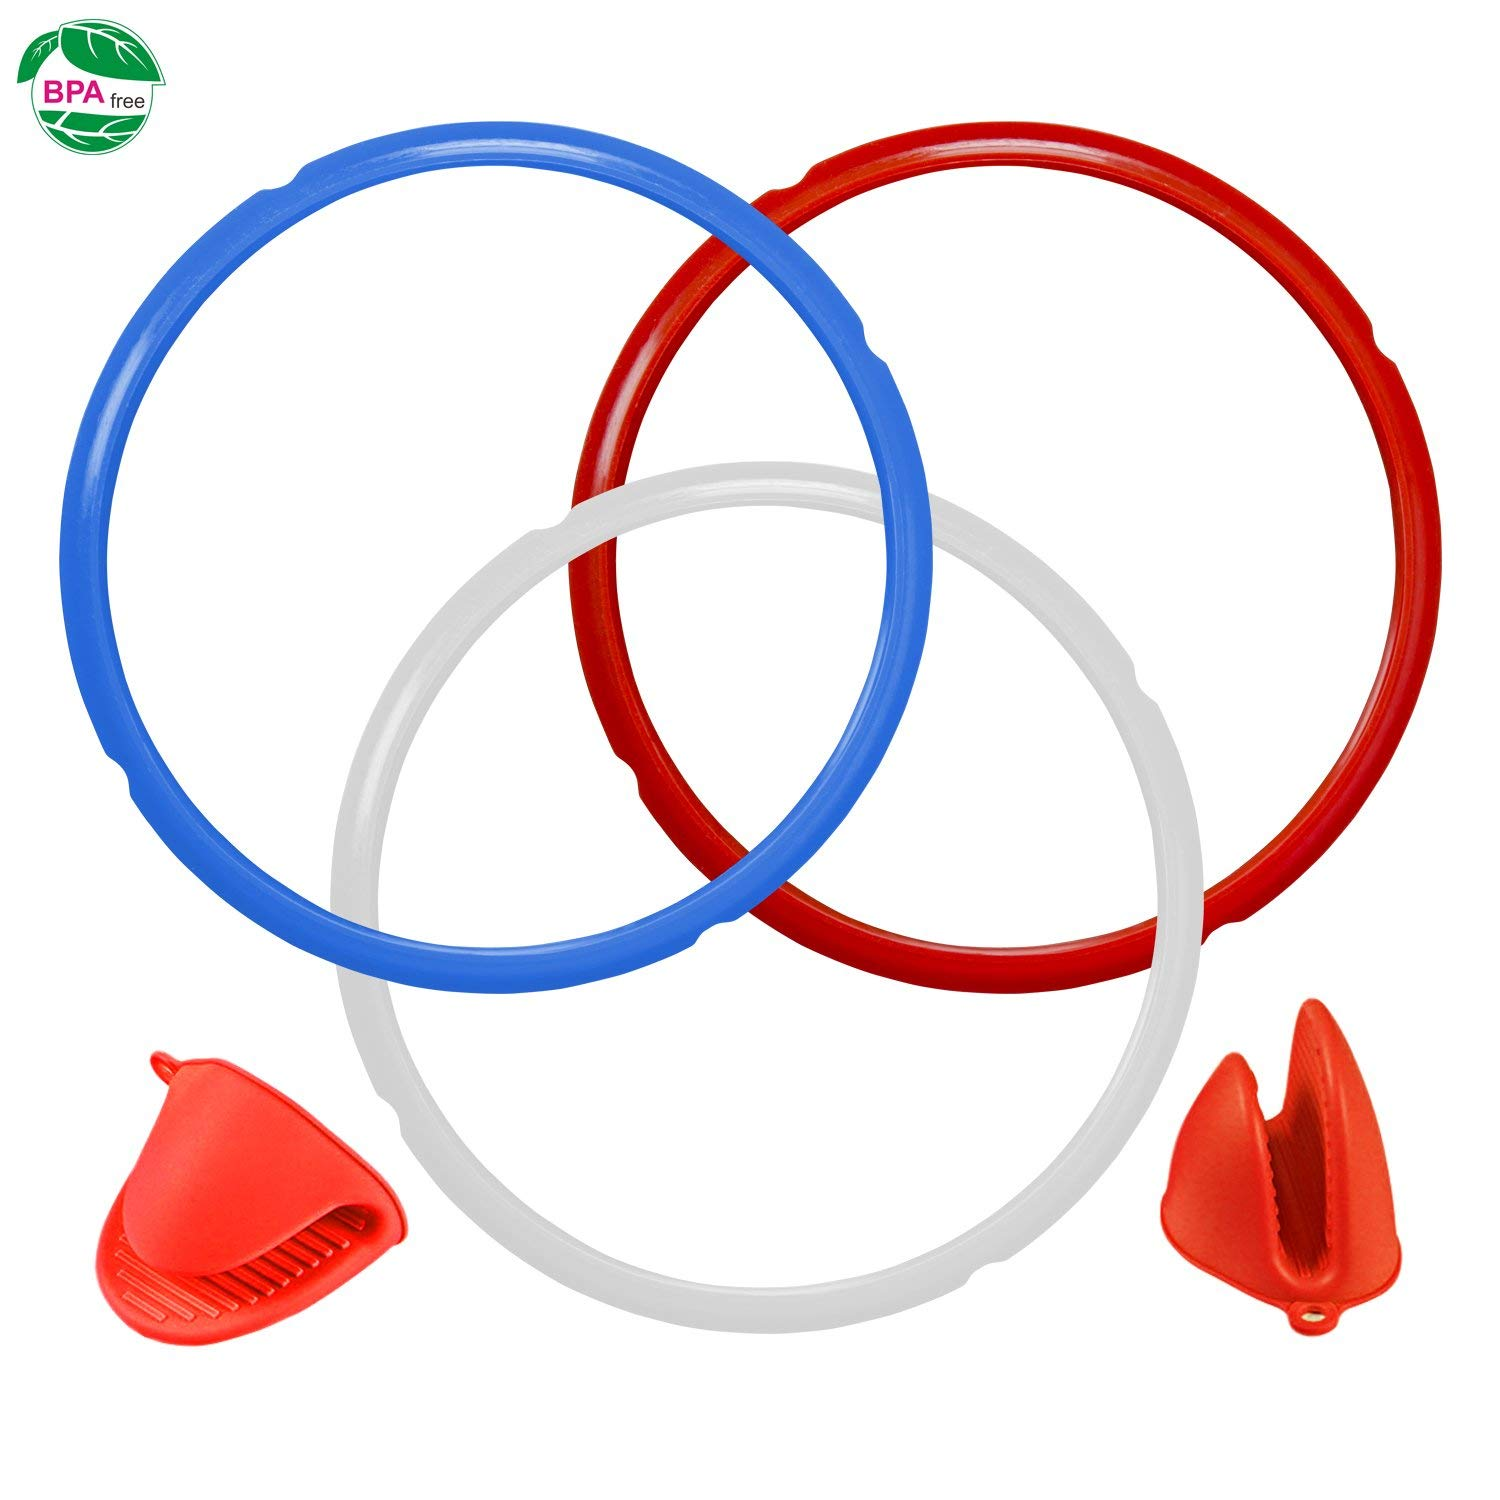 Silicone Sealing Ring for Instant Pot Accessories 8 Quart Sweet and Savoury Edition Seal Lasting & BPA-free Pack of 3 with 1 pair of Silicone Oven Mitts Free ( Blue,Red,Clear)